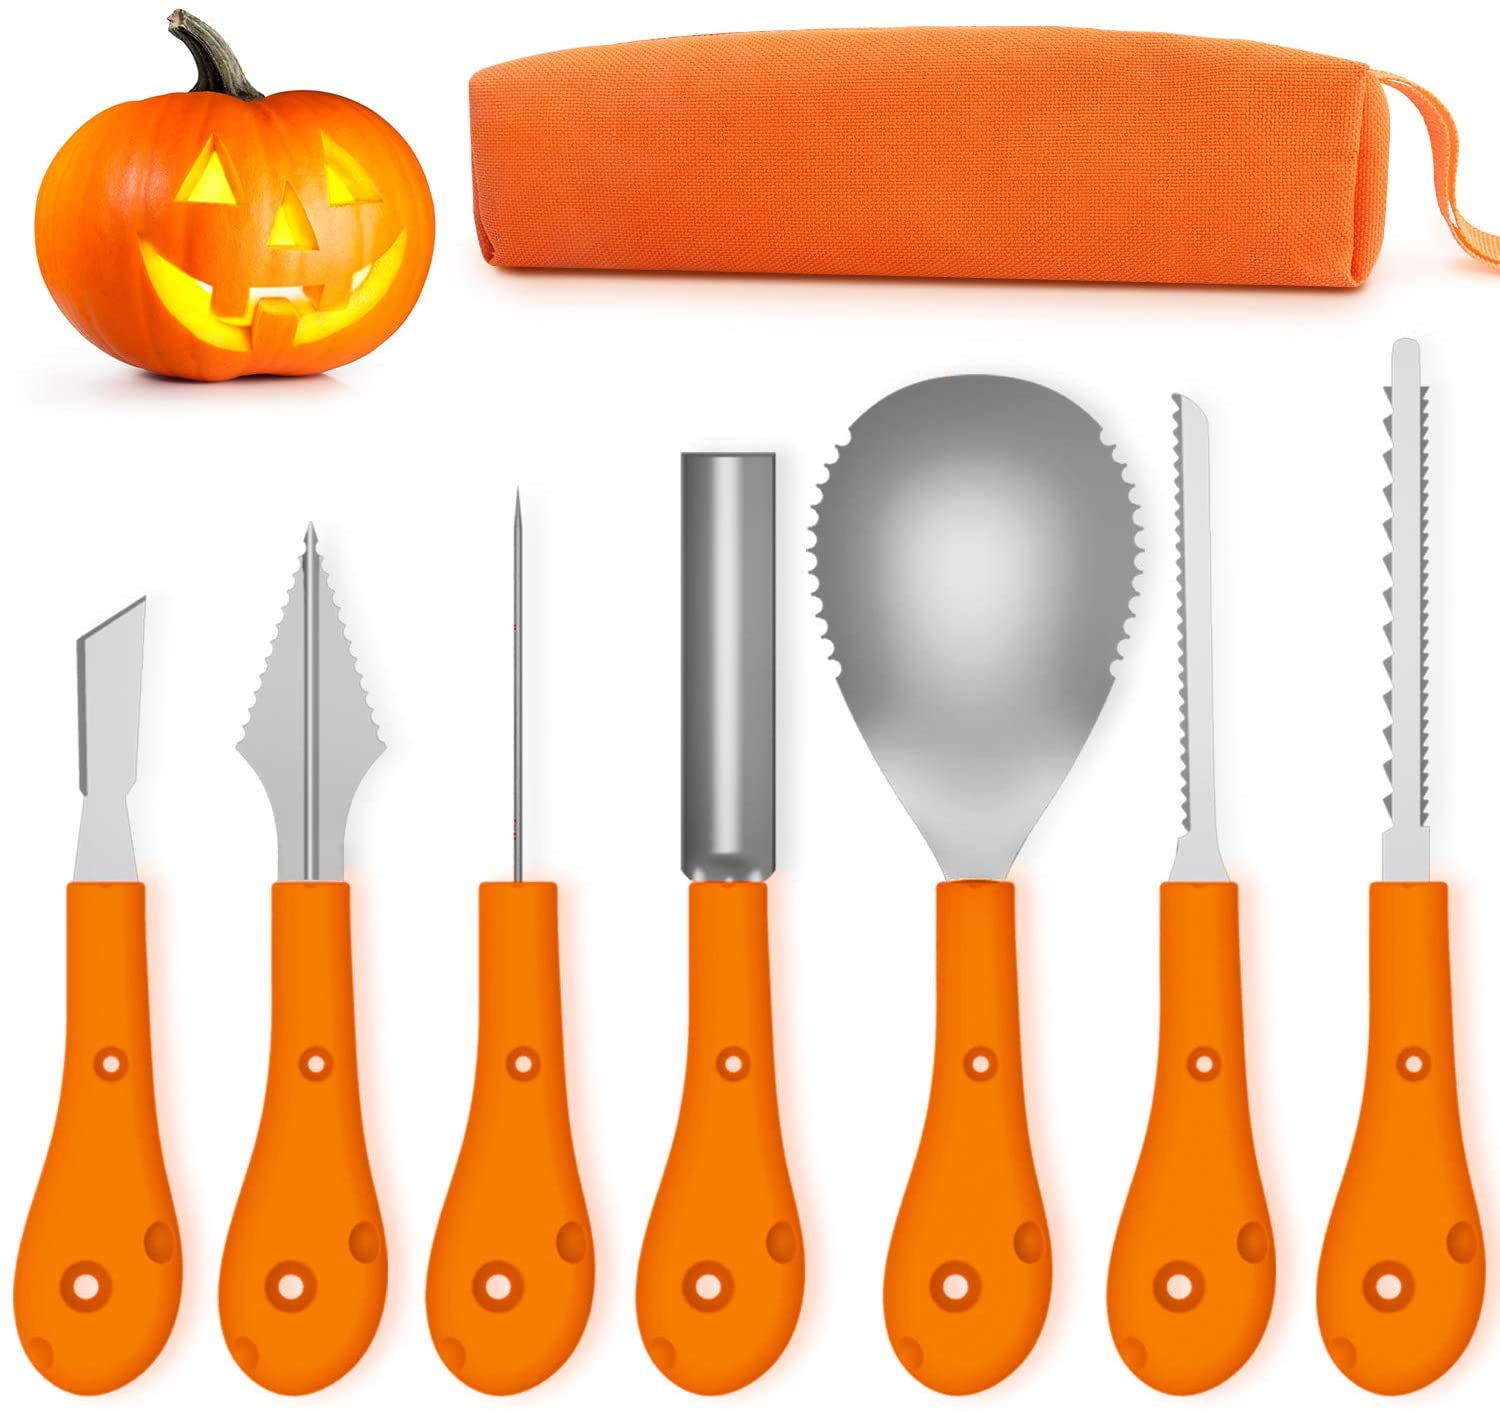 Greatever Halloween Pumpkin Carving Kit,Professional and Heavy Duty Stainless Steel Tools,Pumpkin Carving Set with Carrying Case (7Pcs)